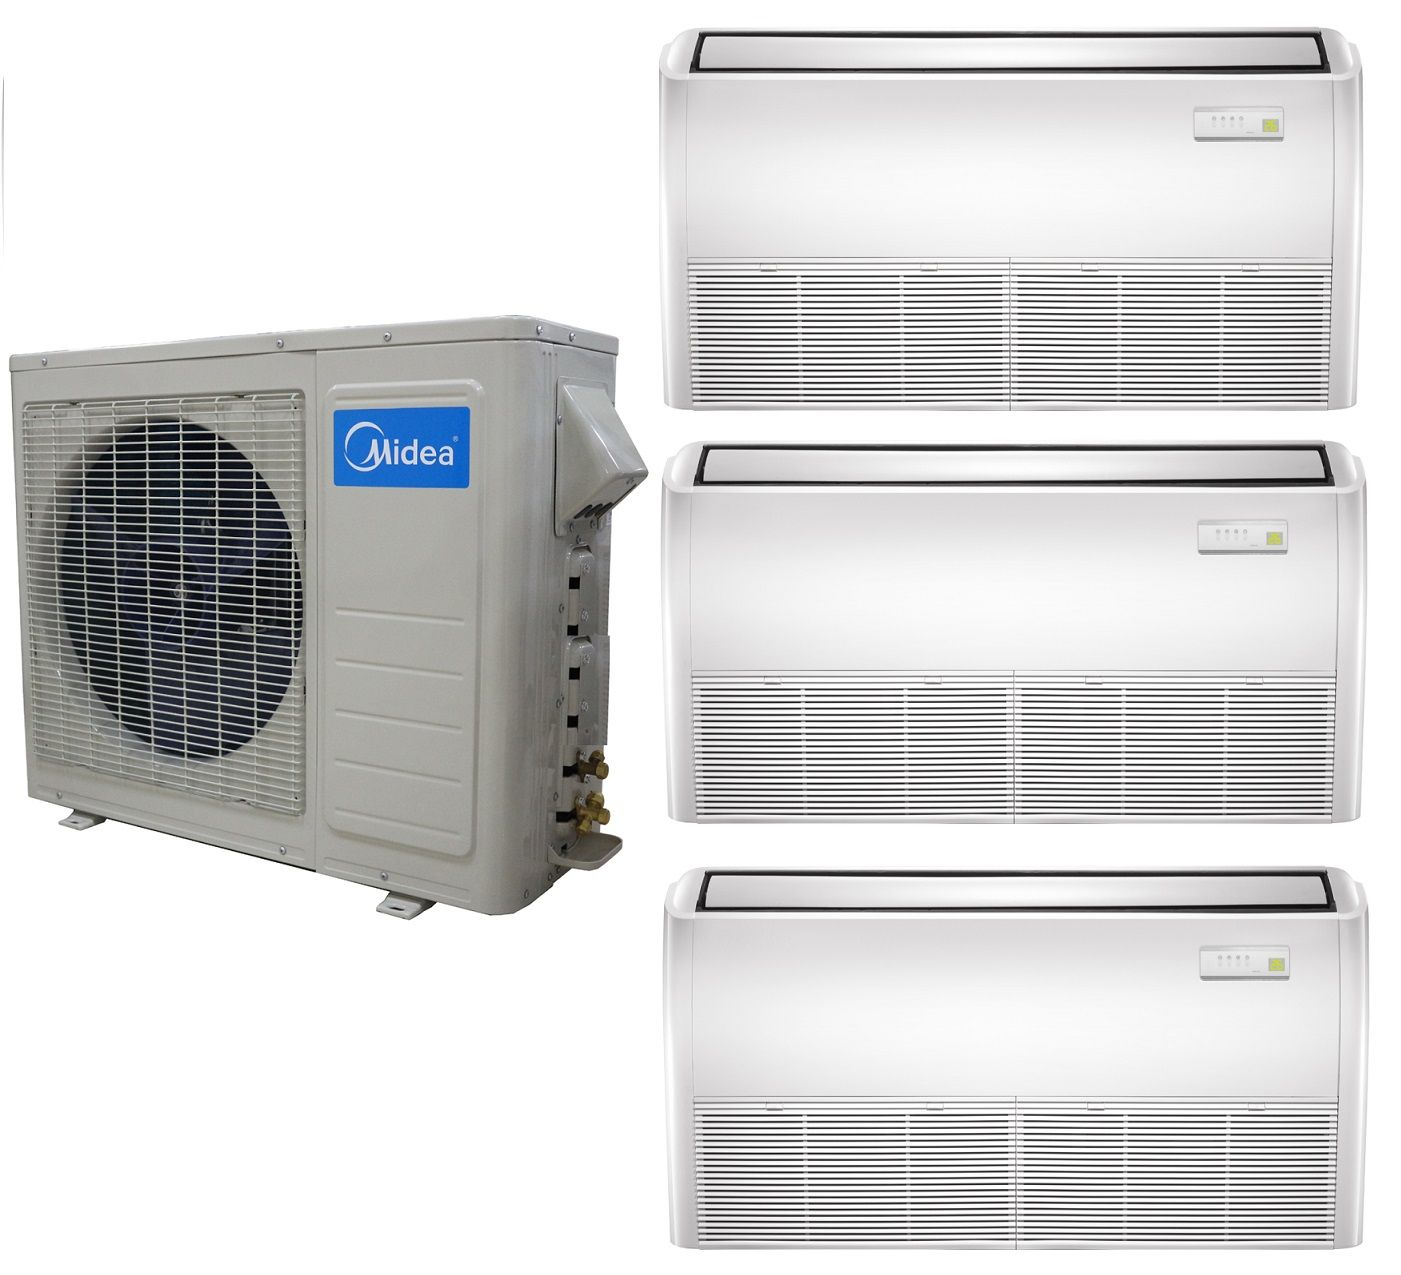 Midea 21 Seer 3 Zone Universal Mount Mini Split Heat Pump Ac Ulti Zone Heat Pump Systems Provide Outdoor Units For Two Thre Heat Pump System Heat Pump Splits